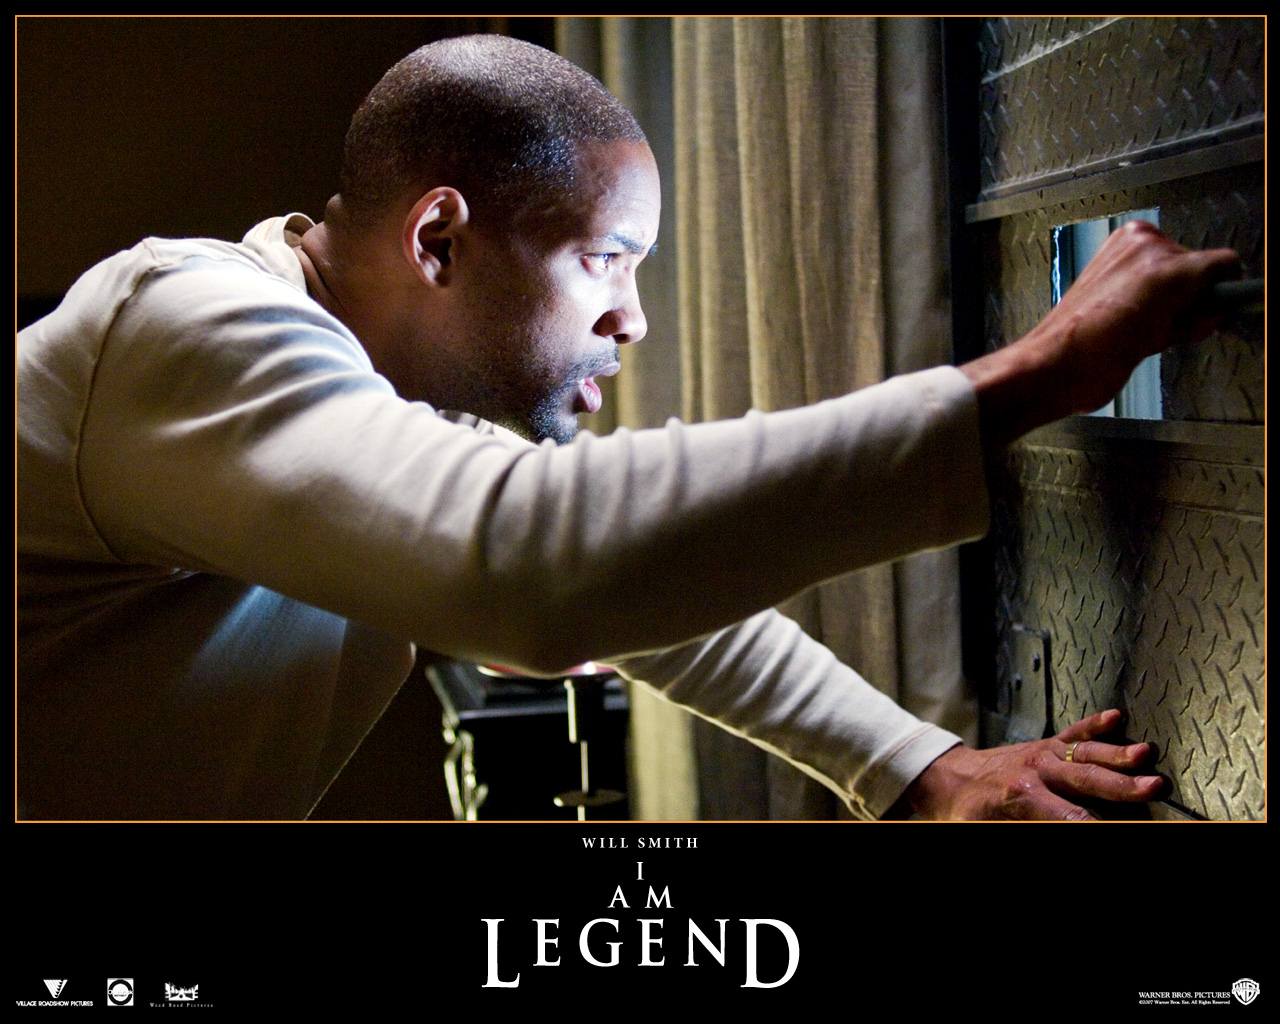 http://2.bp.blogspot.com/_EQKlgPvurNc/SxWSqkEk8HI/AAAAAAAAAH4/J6n_WXlNGfE/s1600/Will_Smith_in_I_Am_Legend_Wallpaper_2_1024.jpg